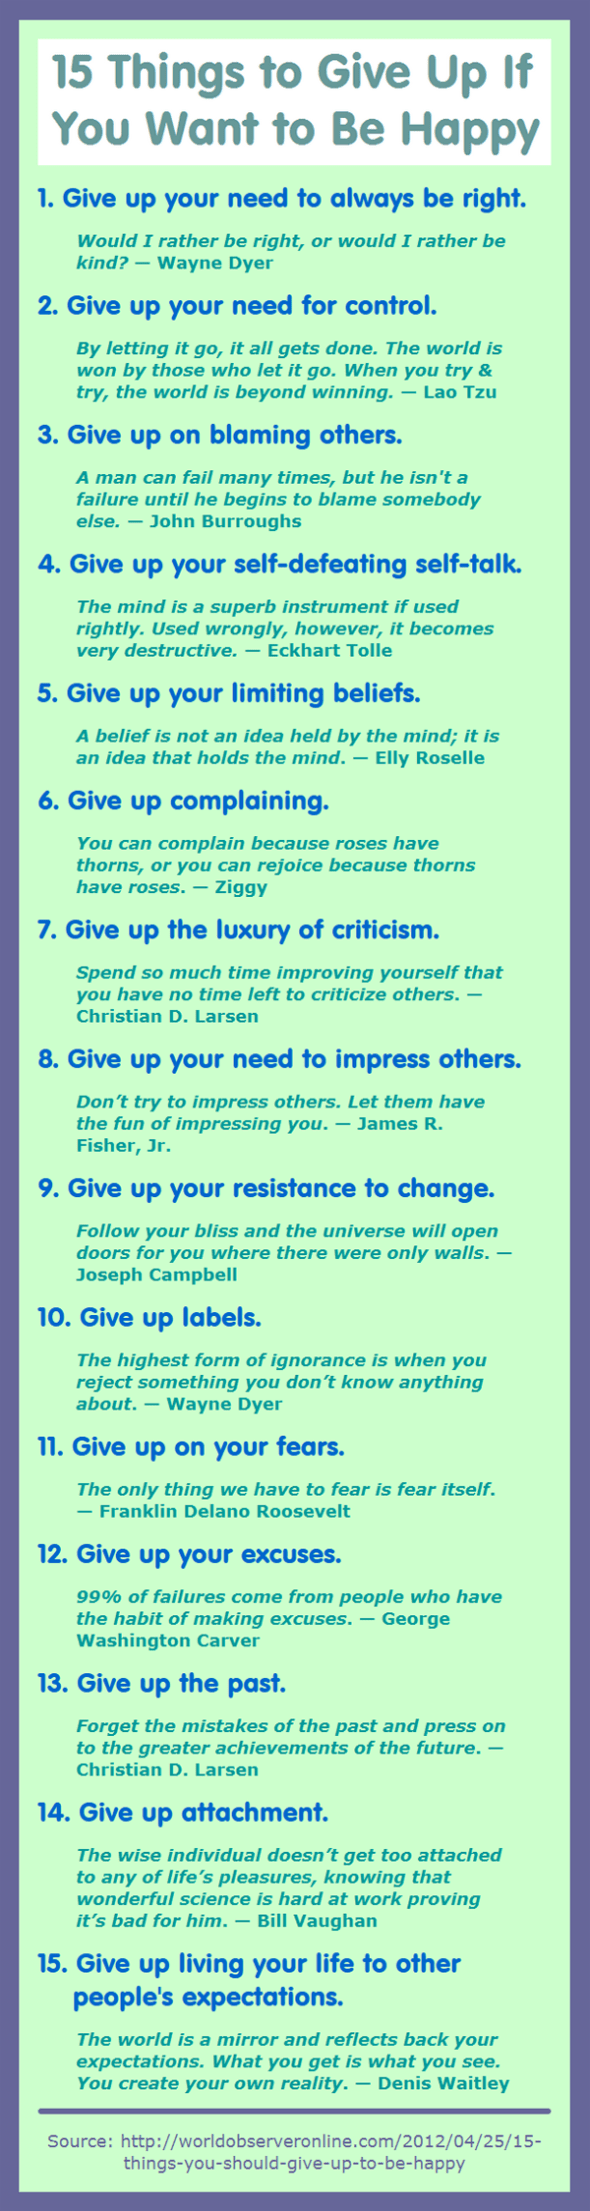 15 Things to Give Up If You Want to Be Happy #happiness #behappy